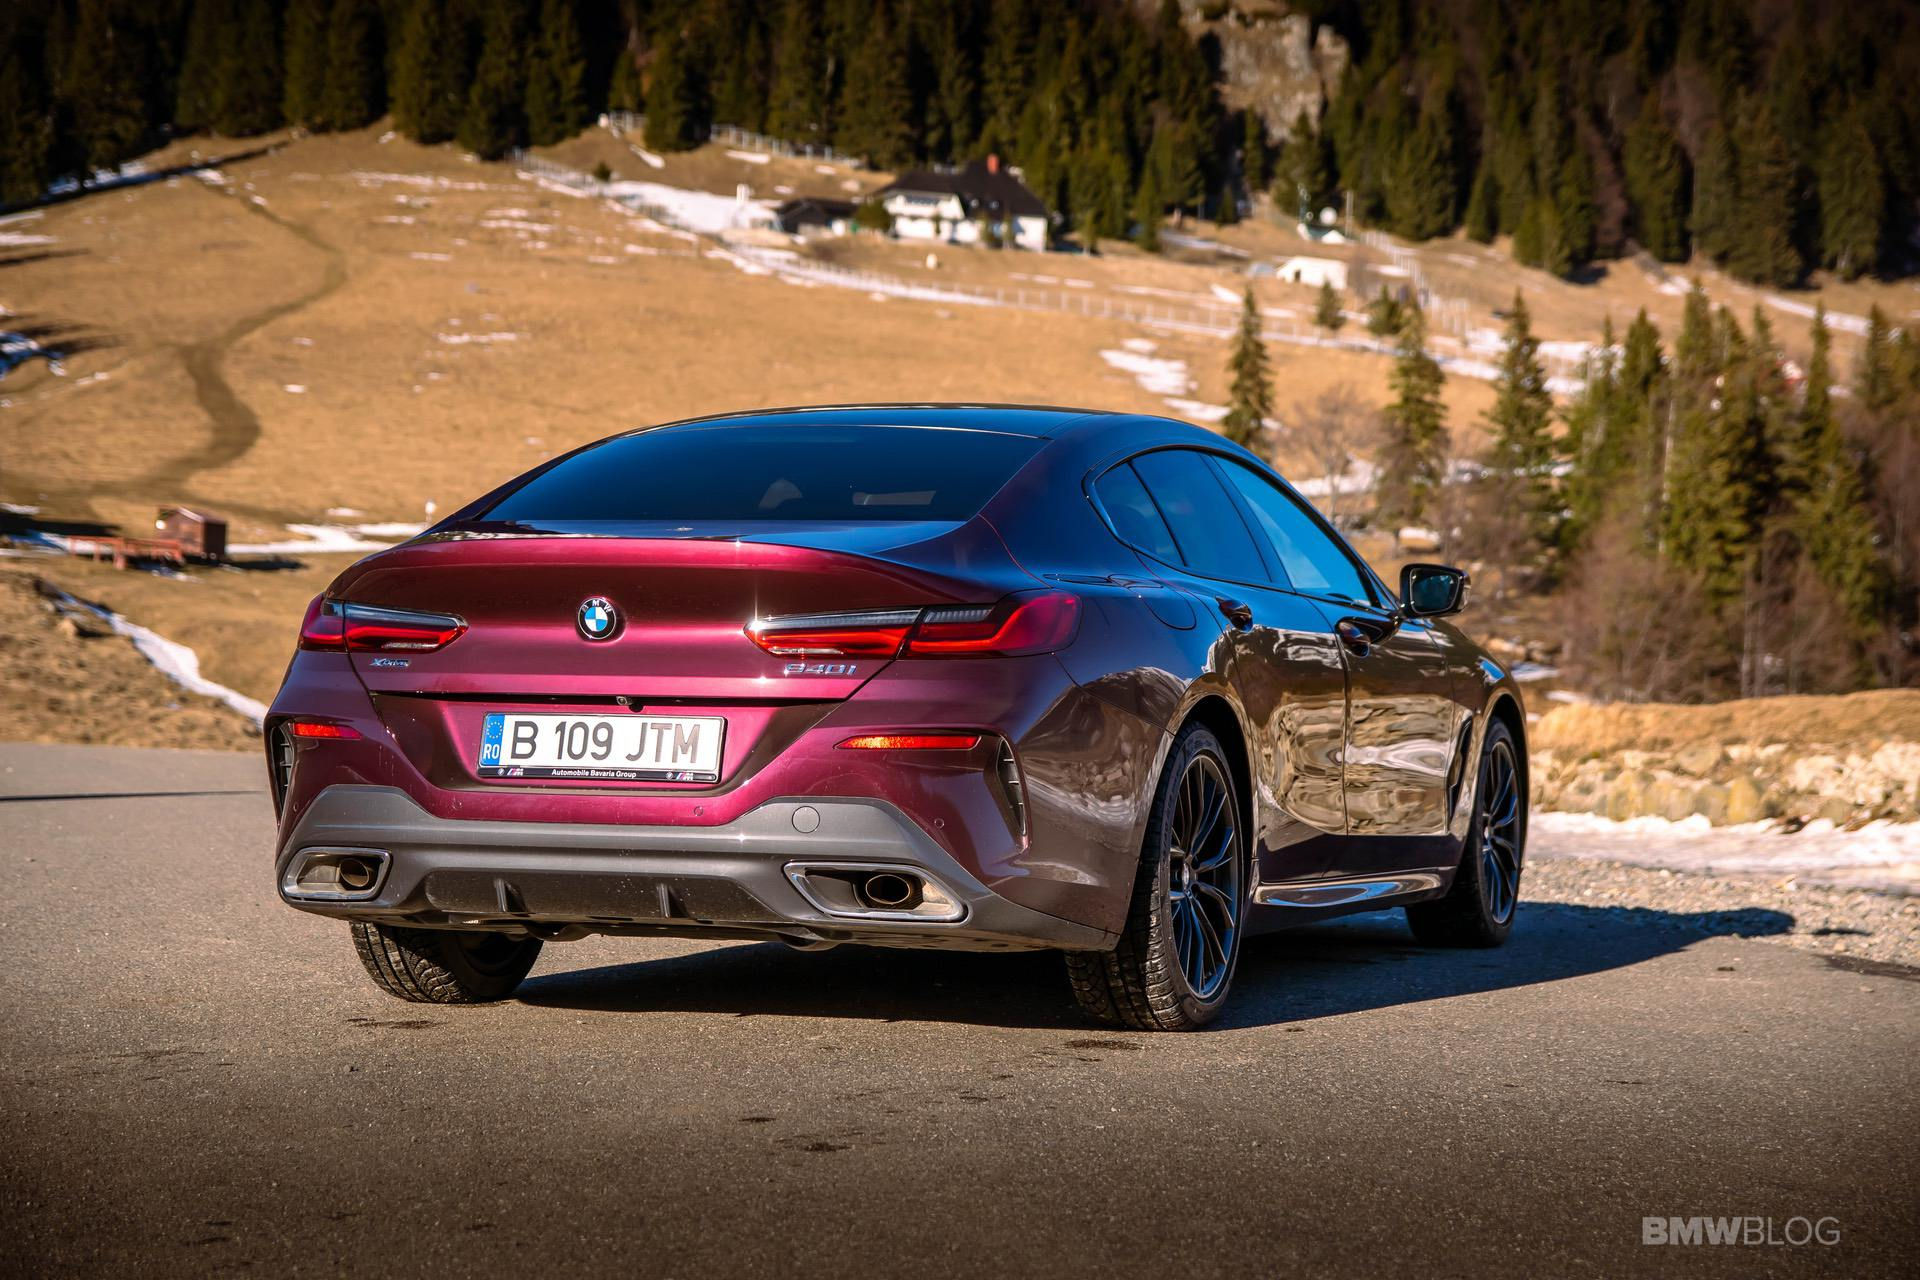 TEST DRIVE: 2021 BMW 840i Gran Coupe – Luxury lifestyle